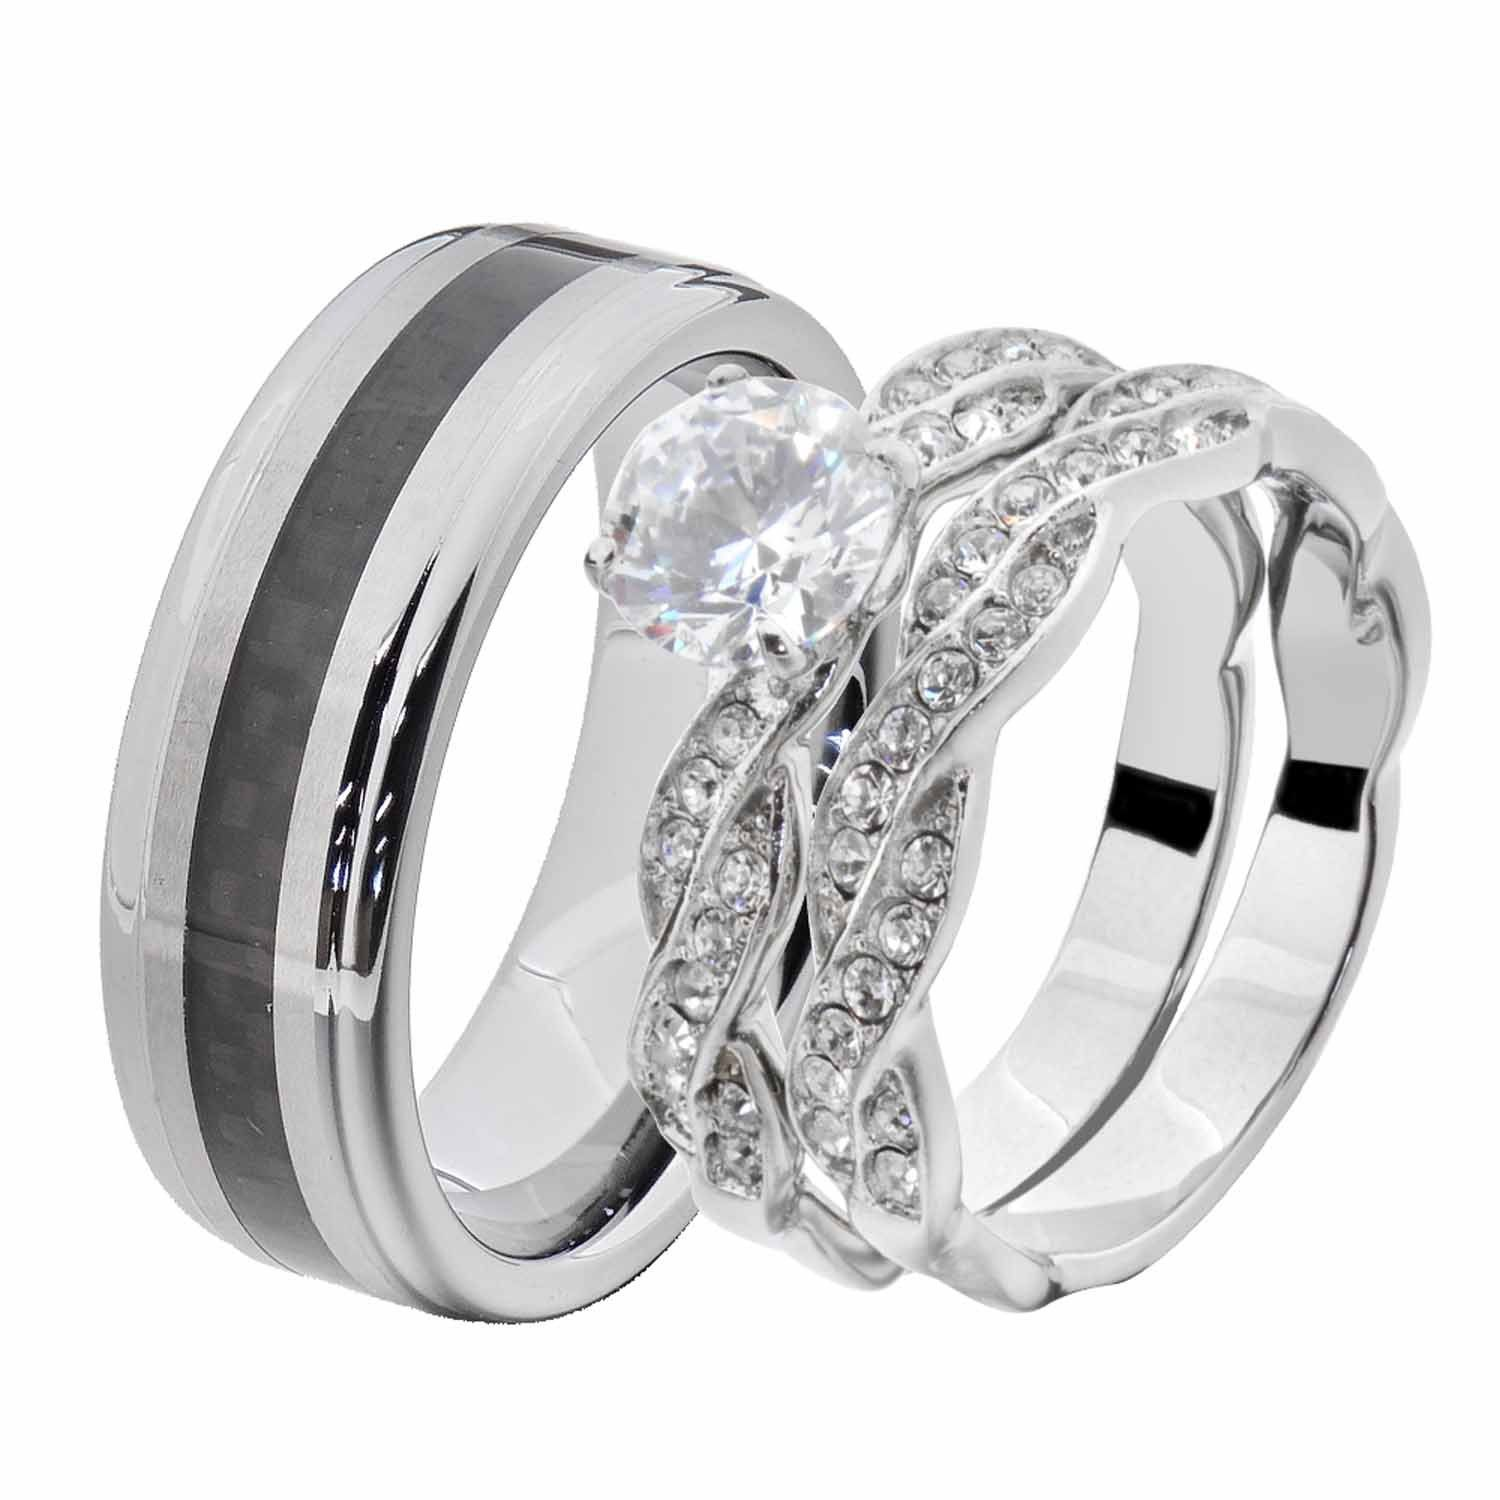 Flamereflection His And Hers Wedding Ring Sets White Stainless